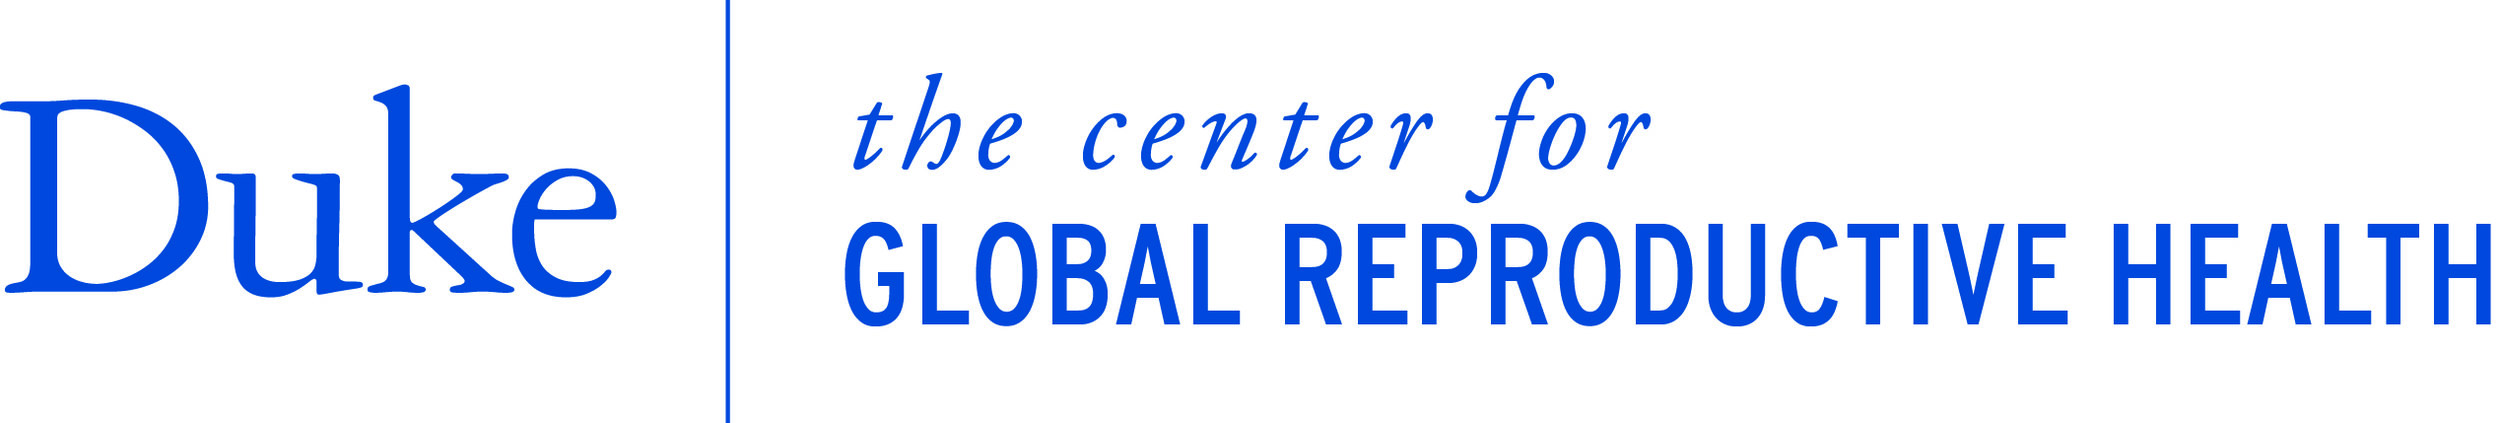 Duke-center-global-reproductive-health-logo.jpg